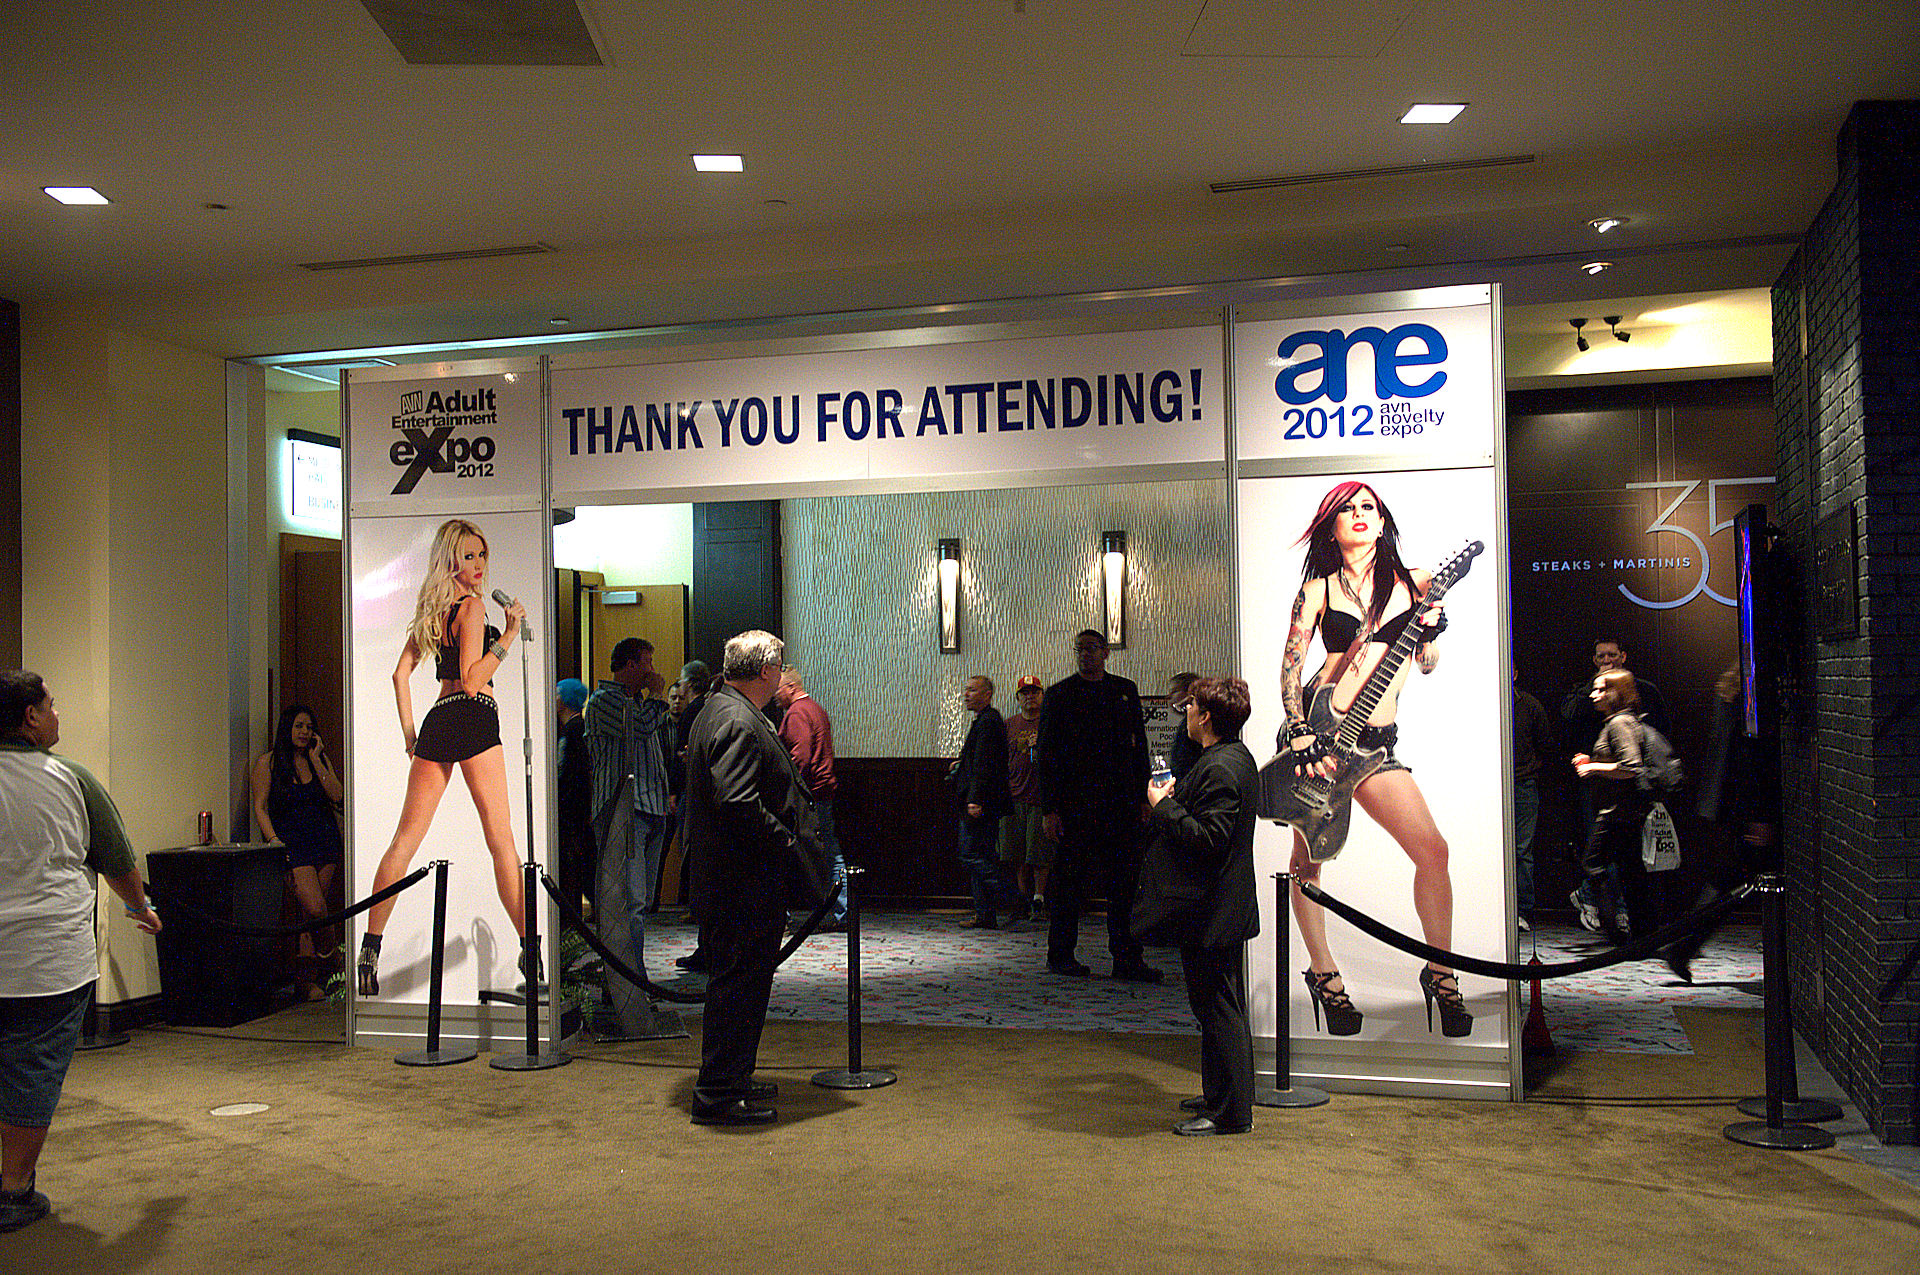 2013-10-15-AVN_Adult_Entertainment_Expo_2012__Exit.jpg